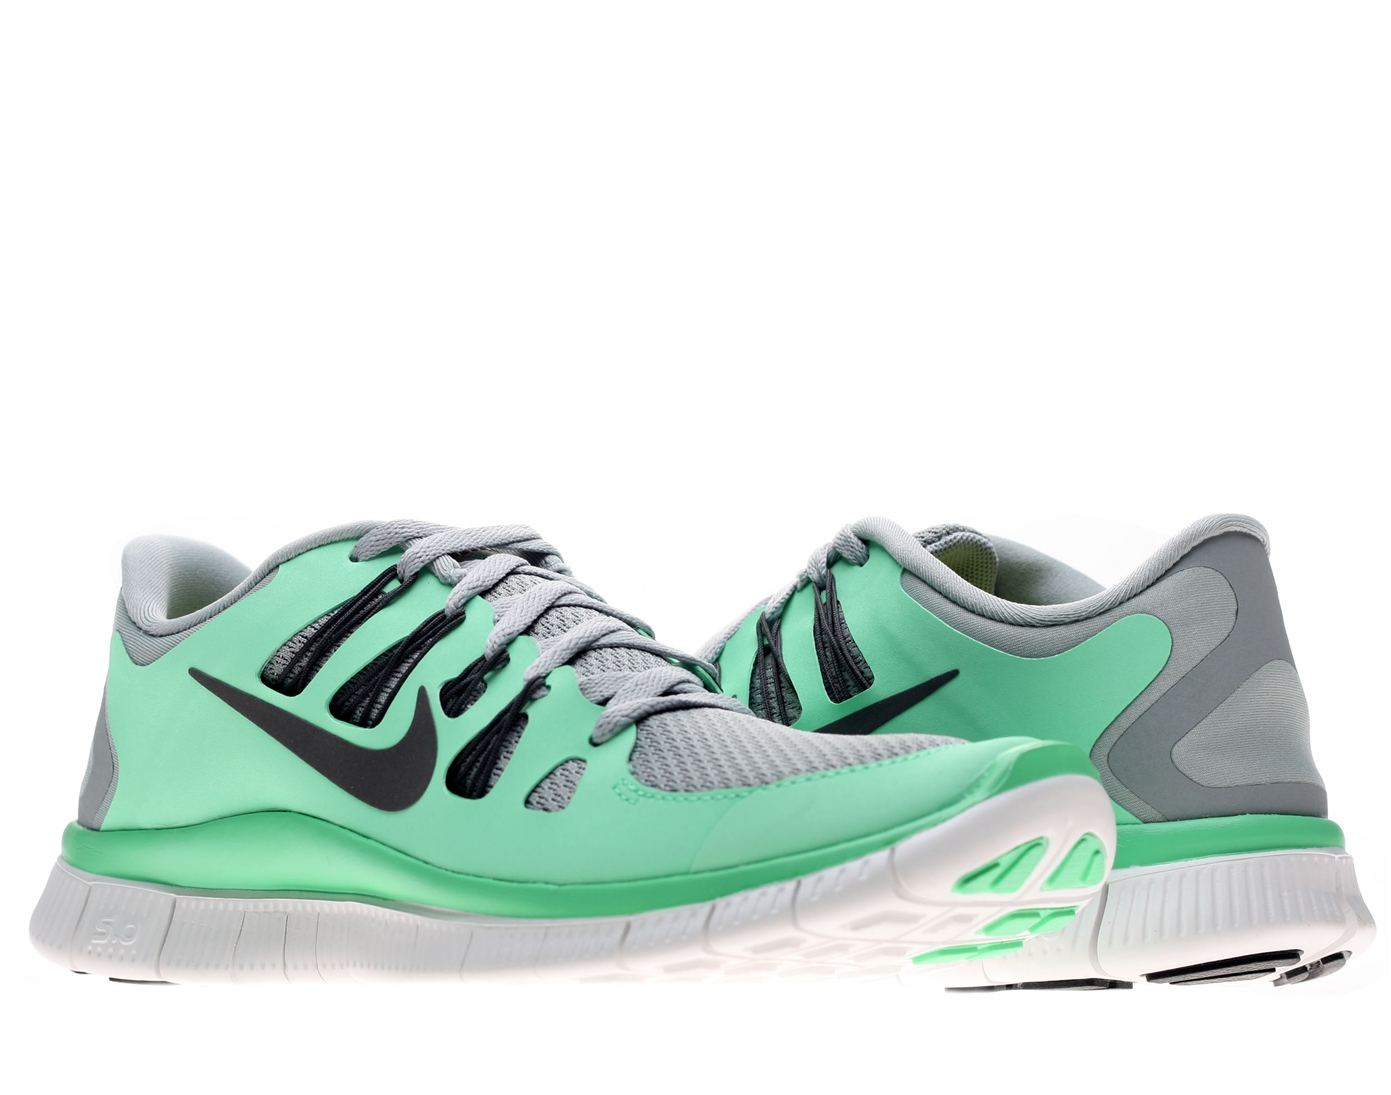 c65ea68023e5 ... womens nike free 5.0 mint green  grey .